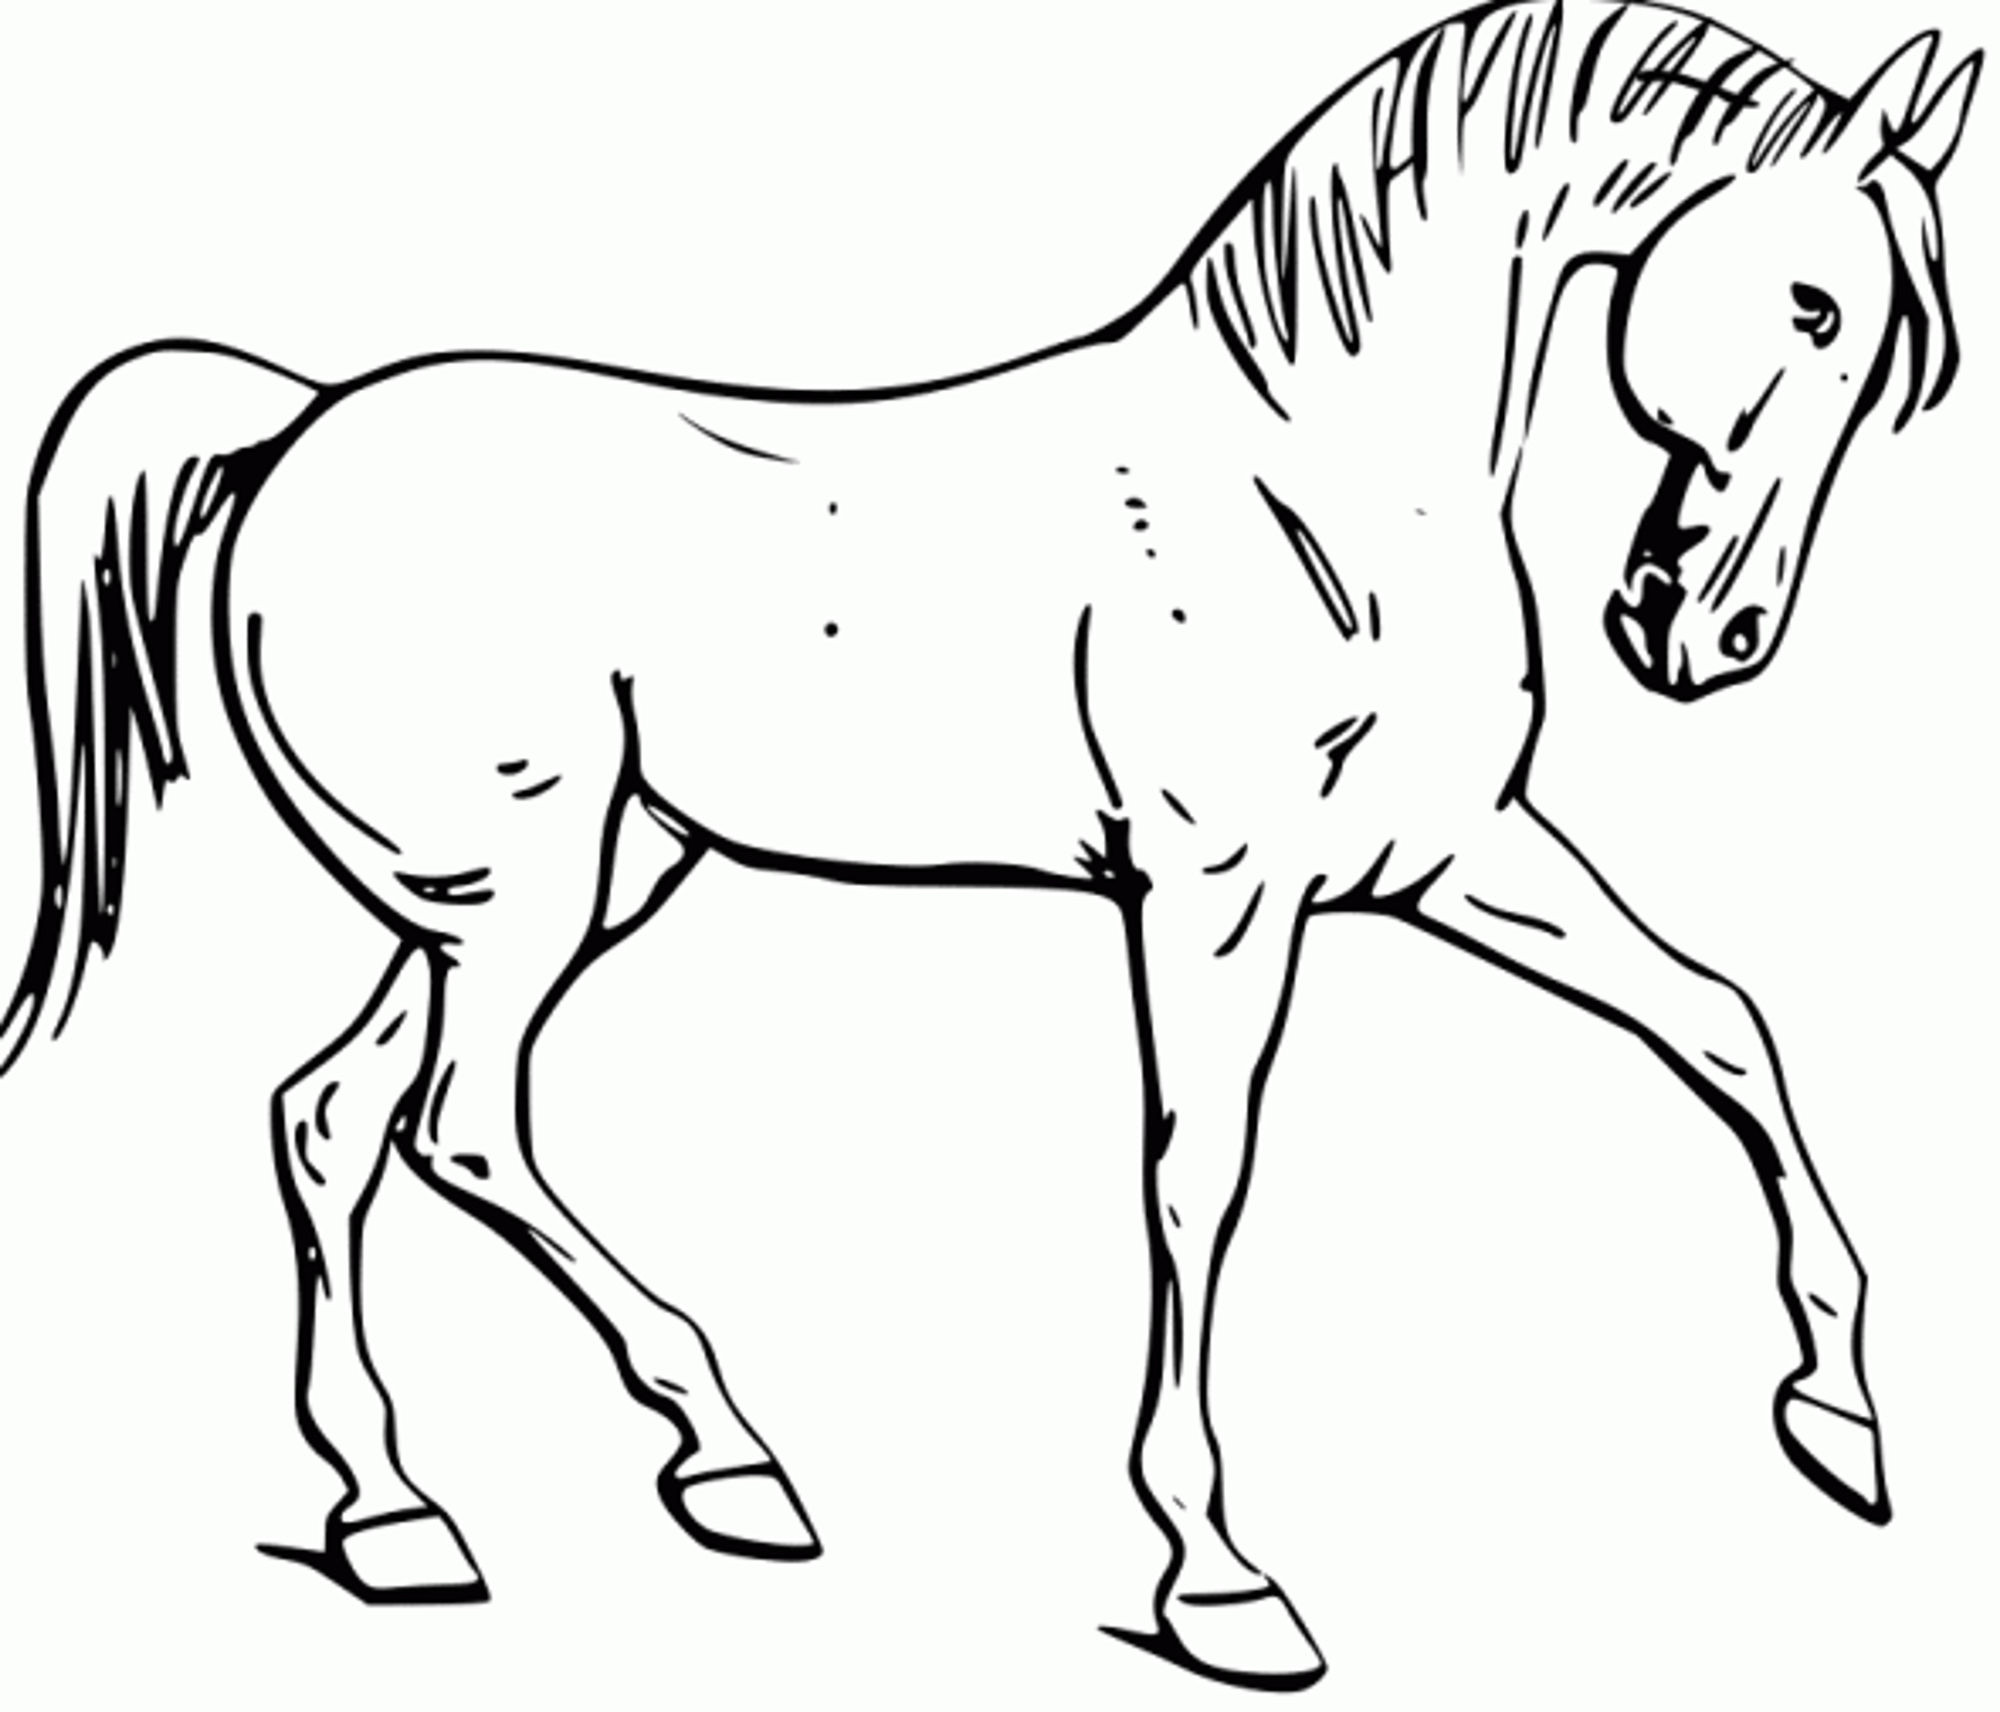 Coloring Pages For Kids Horse  Fun Horse Coloring Pages for Your Kids Printable